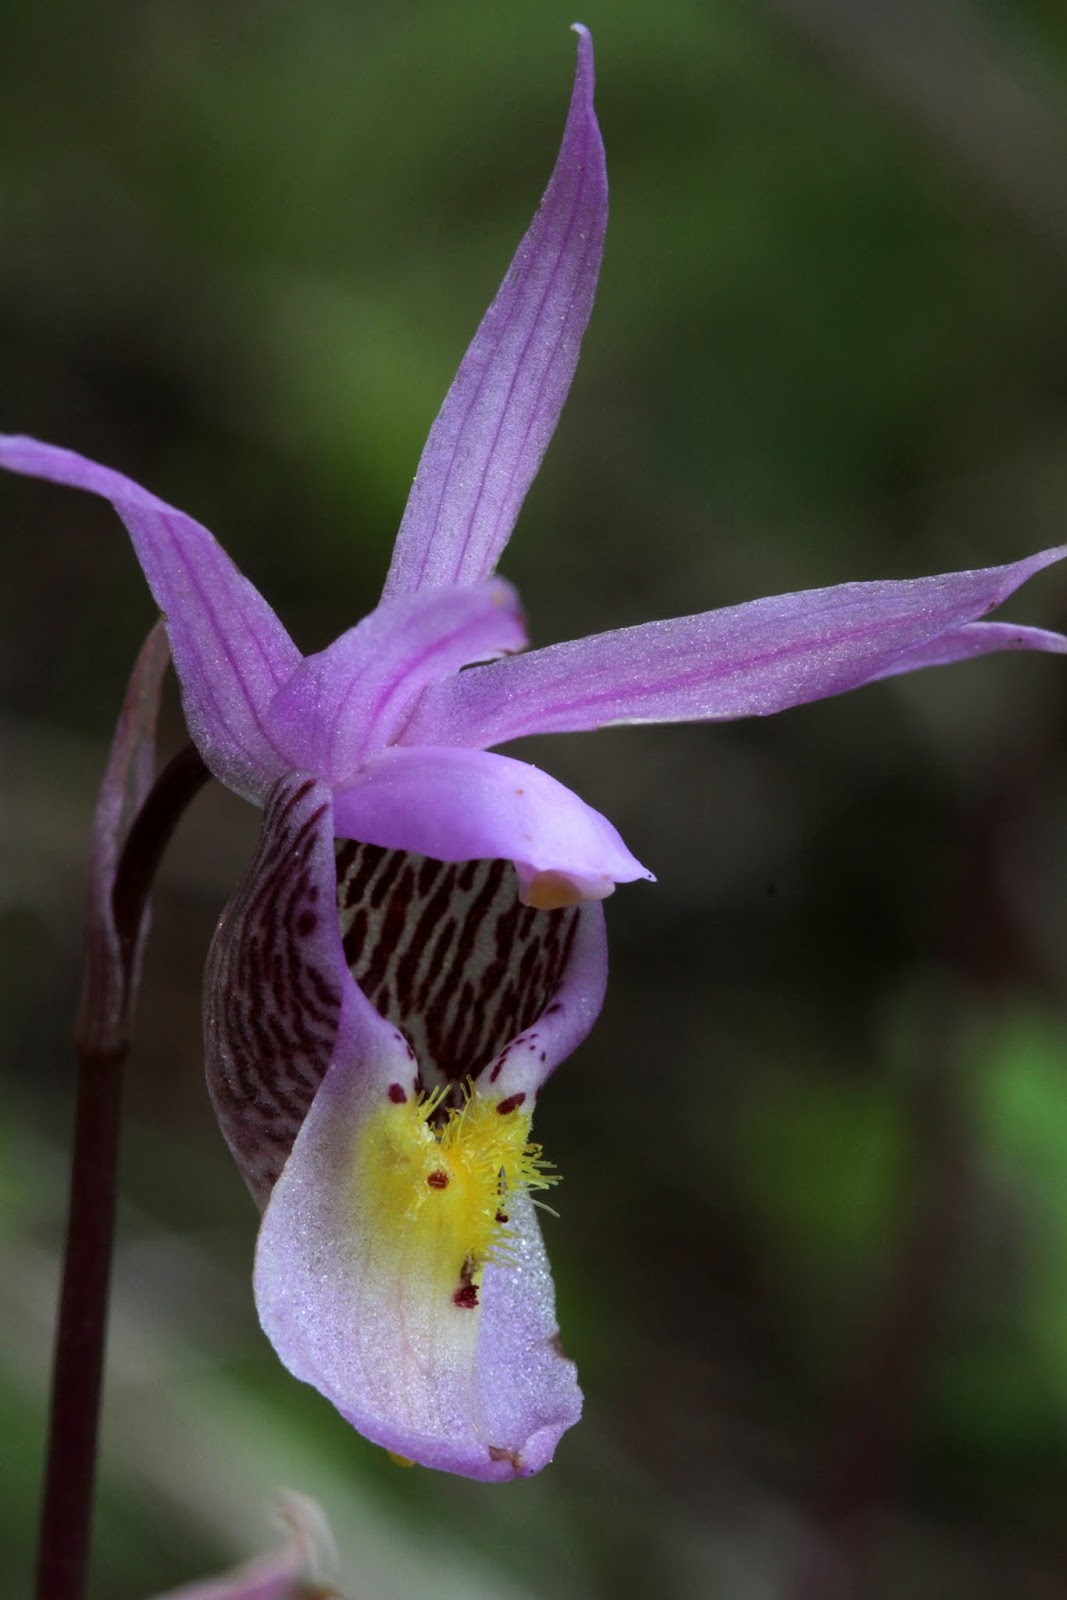 Native orchids of the pacific northwest and the canadian rockies ninth week of the native orchid season yellow ladys slippers eastern fairy slippers and four coralroots mightylinksfo